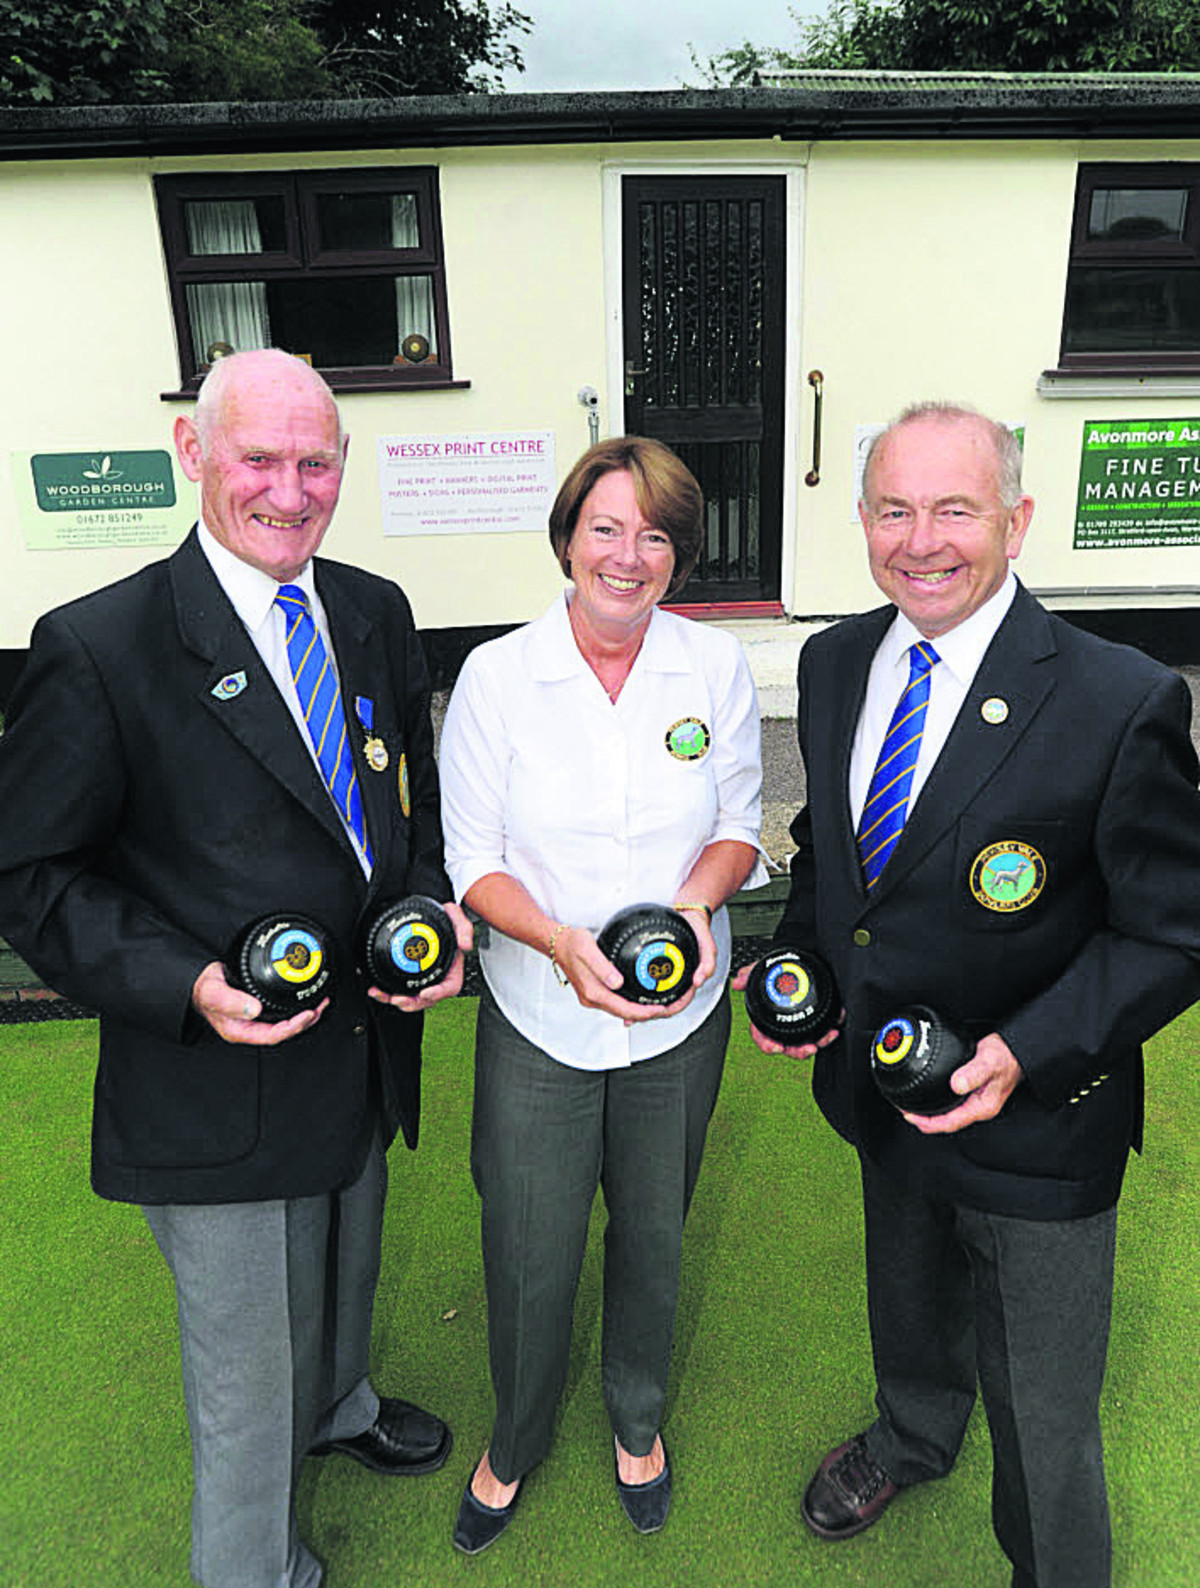 Pewsey Bowls Club president Don Andrews, ladies' captain and project manager Caroline Sprott and chairman of the house John Stephens last year